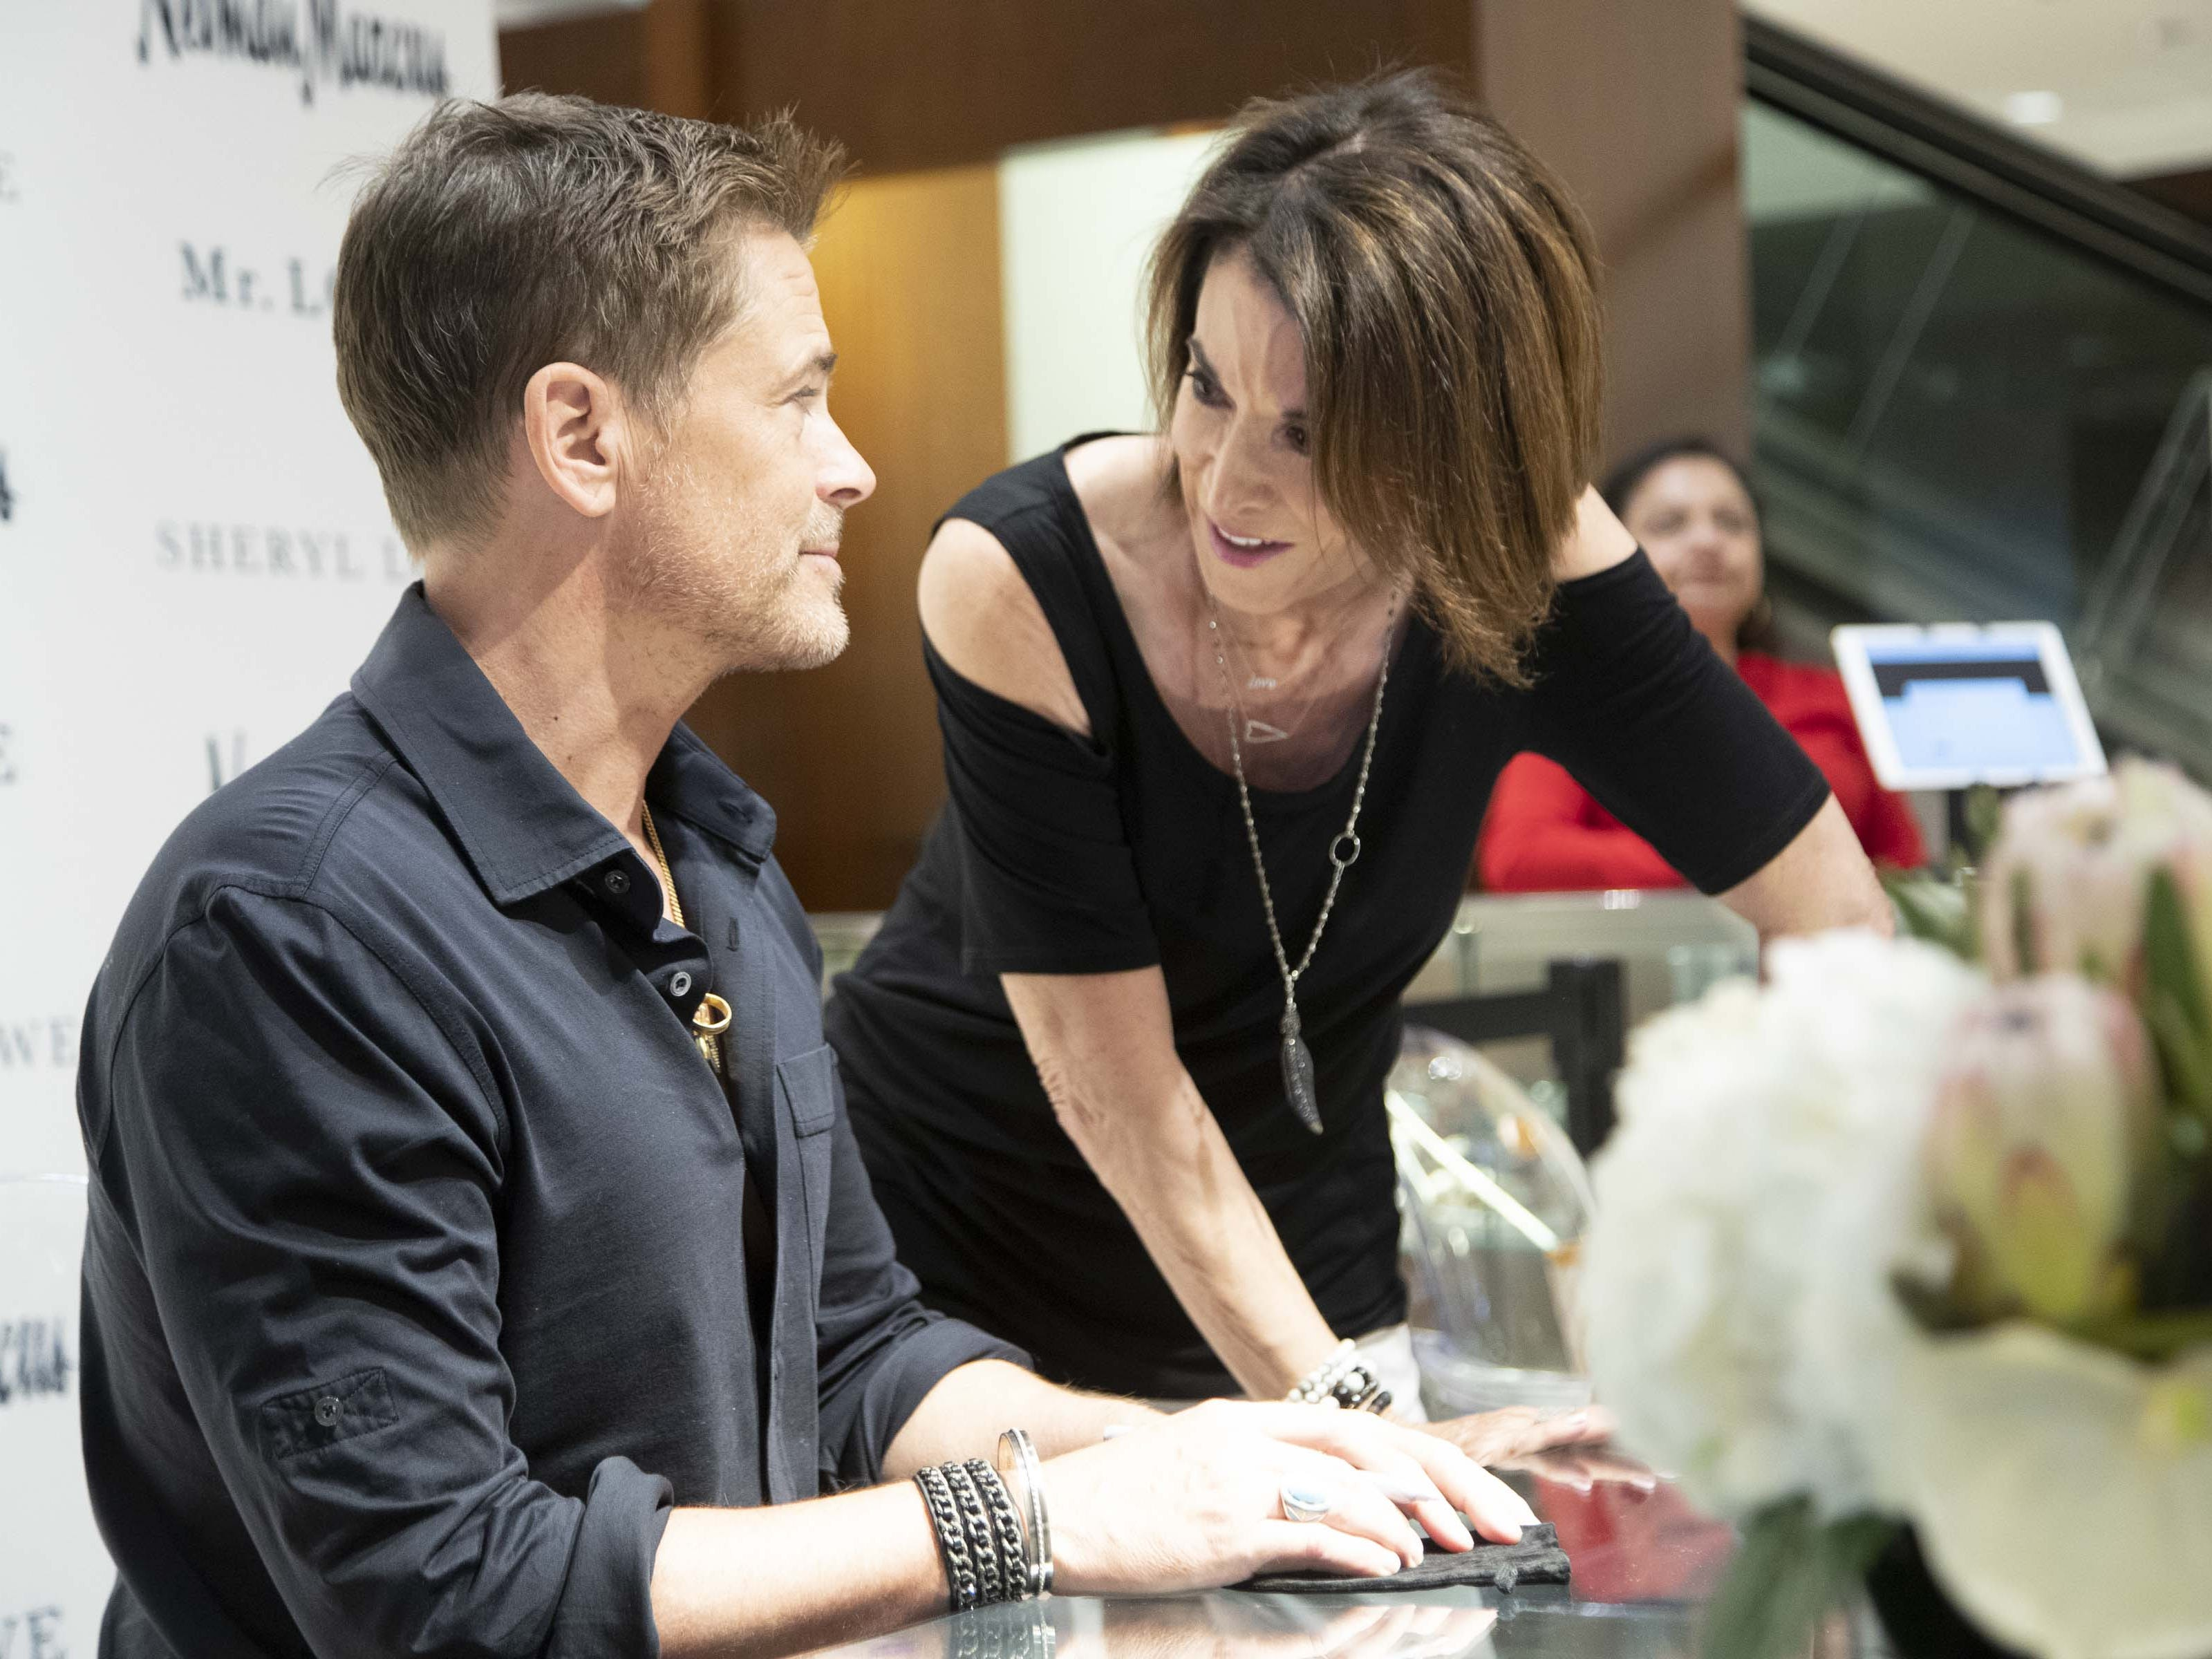 Toni Dachis meets actor Rob Lowe during an event introducing his new men's jewelry collection at Scottsdale Fashion Square on March 28, 2019.